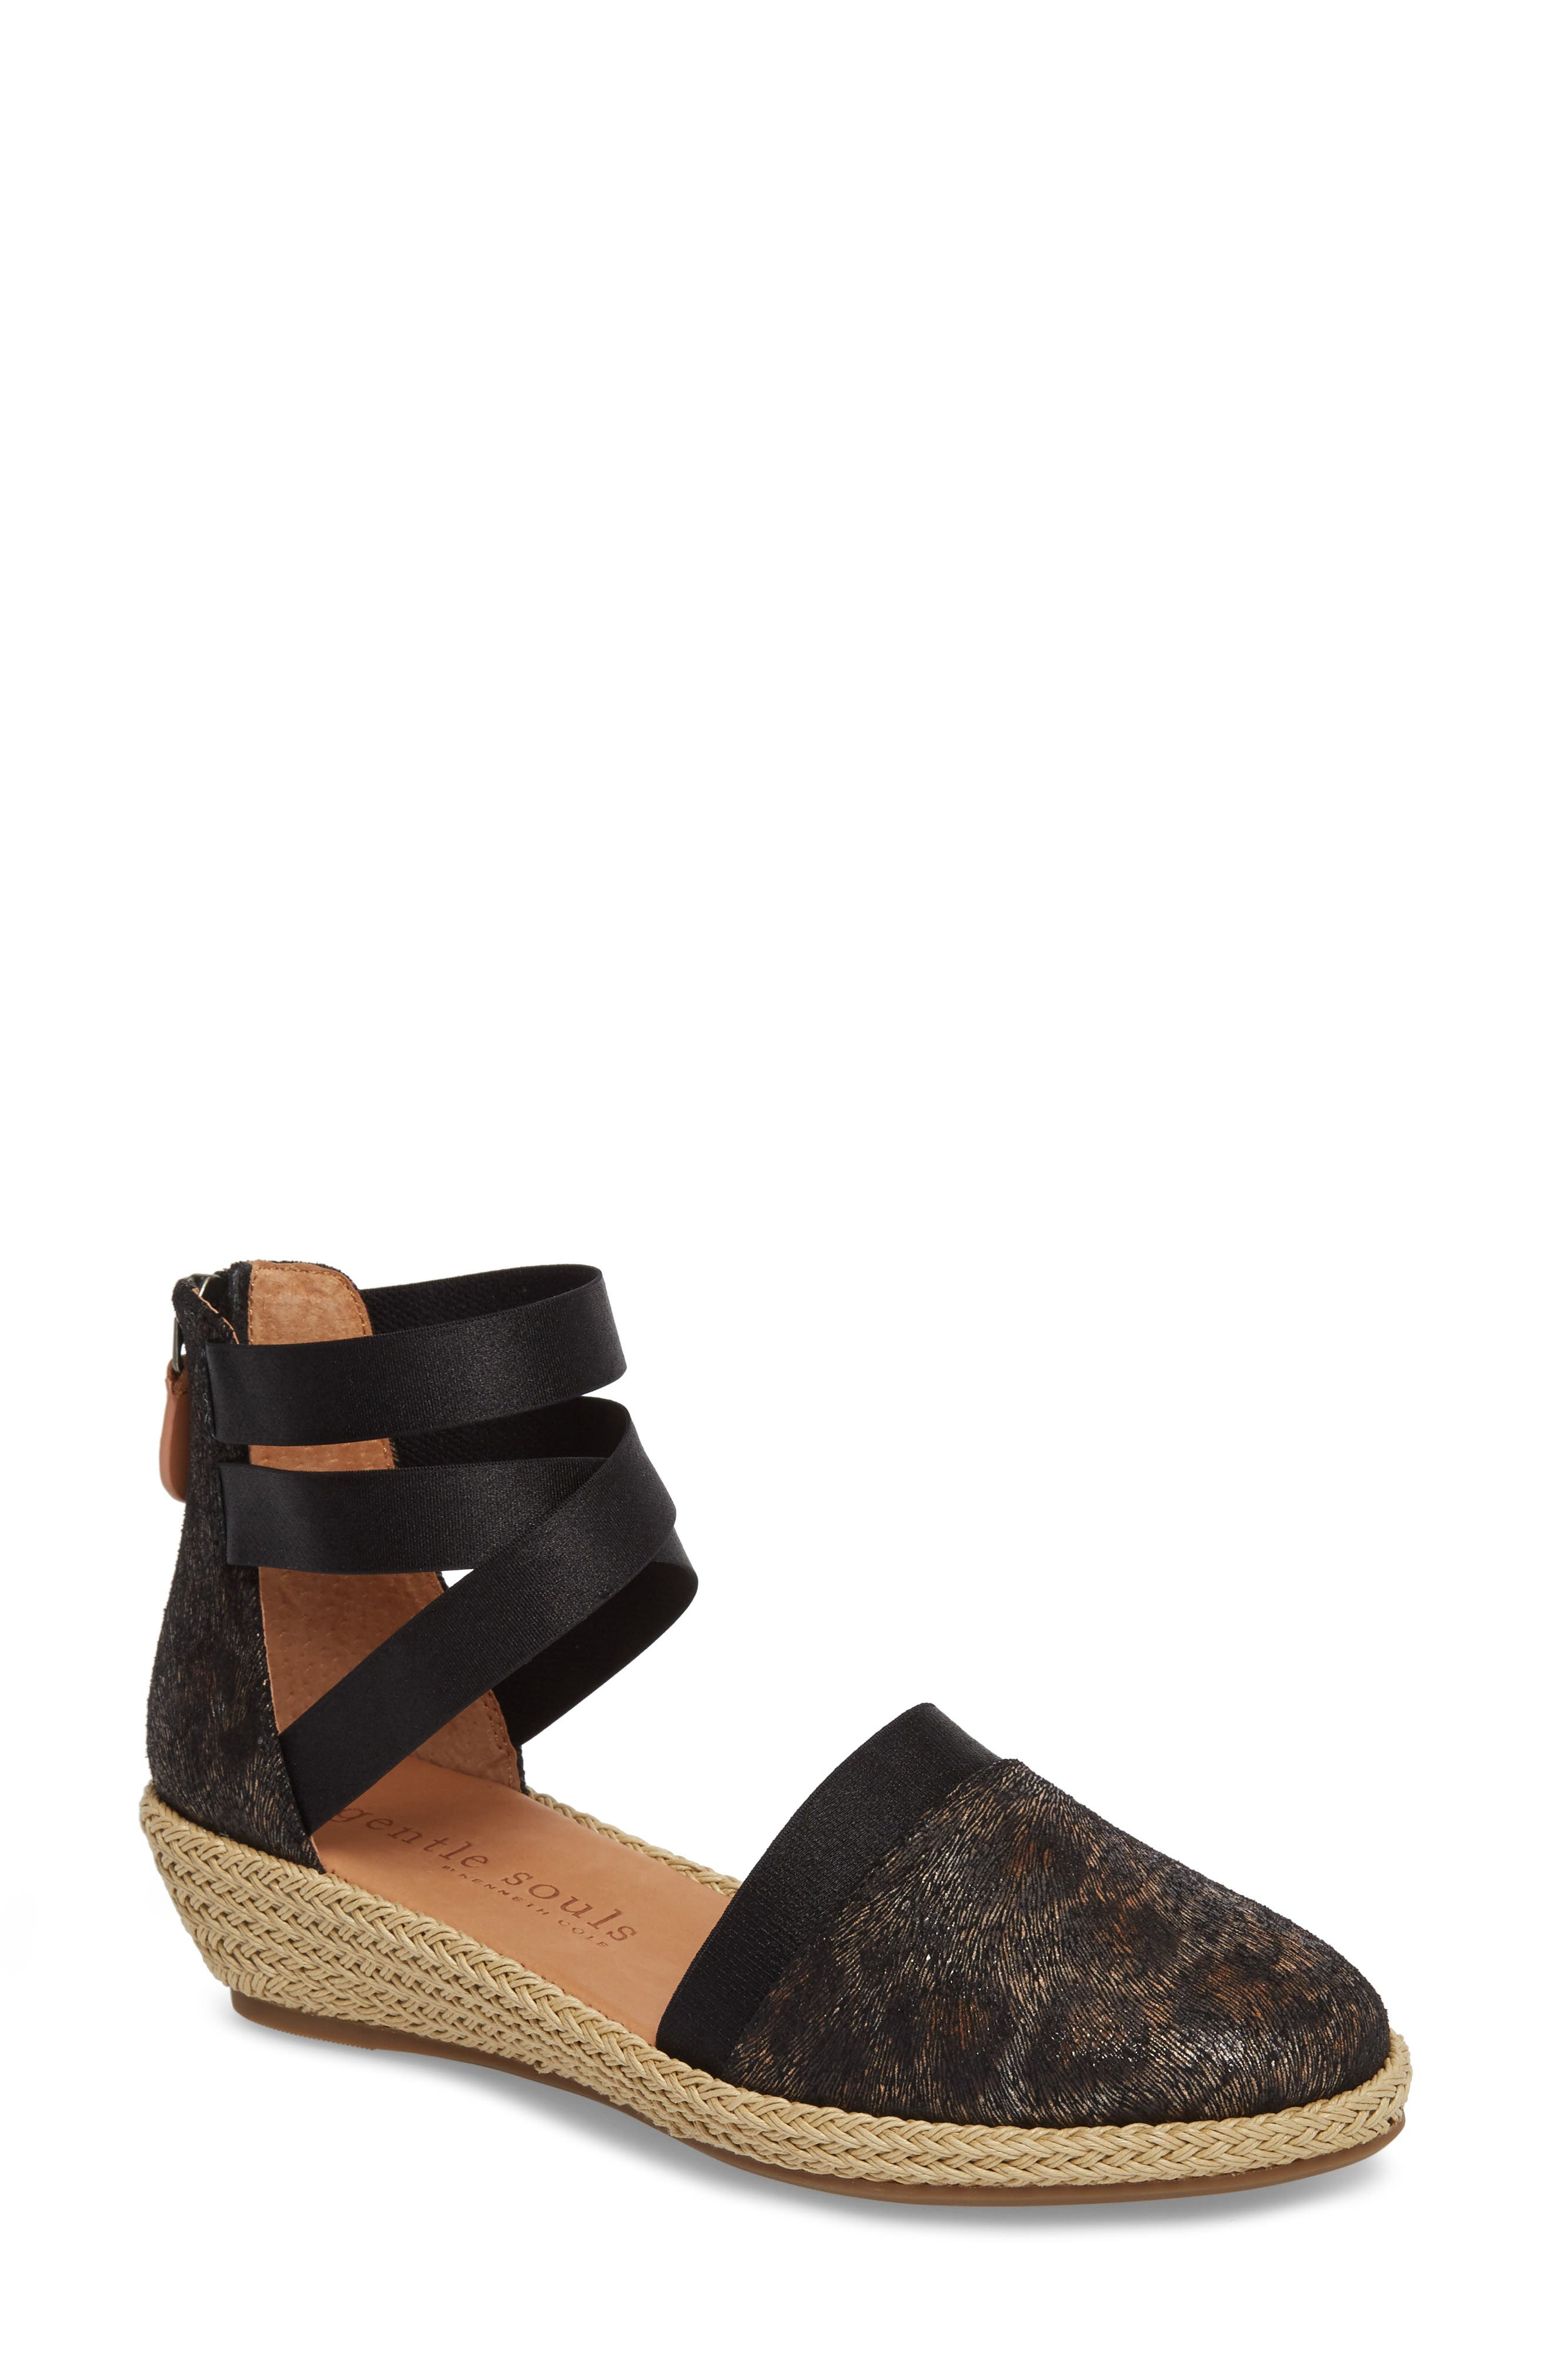 by Kenneth Cole Beth Espadrille Sandal,                             Main thumbnail 1, color,                             Black Leopard Printed Leather